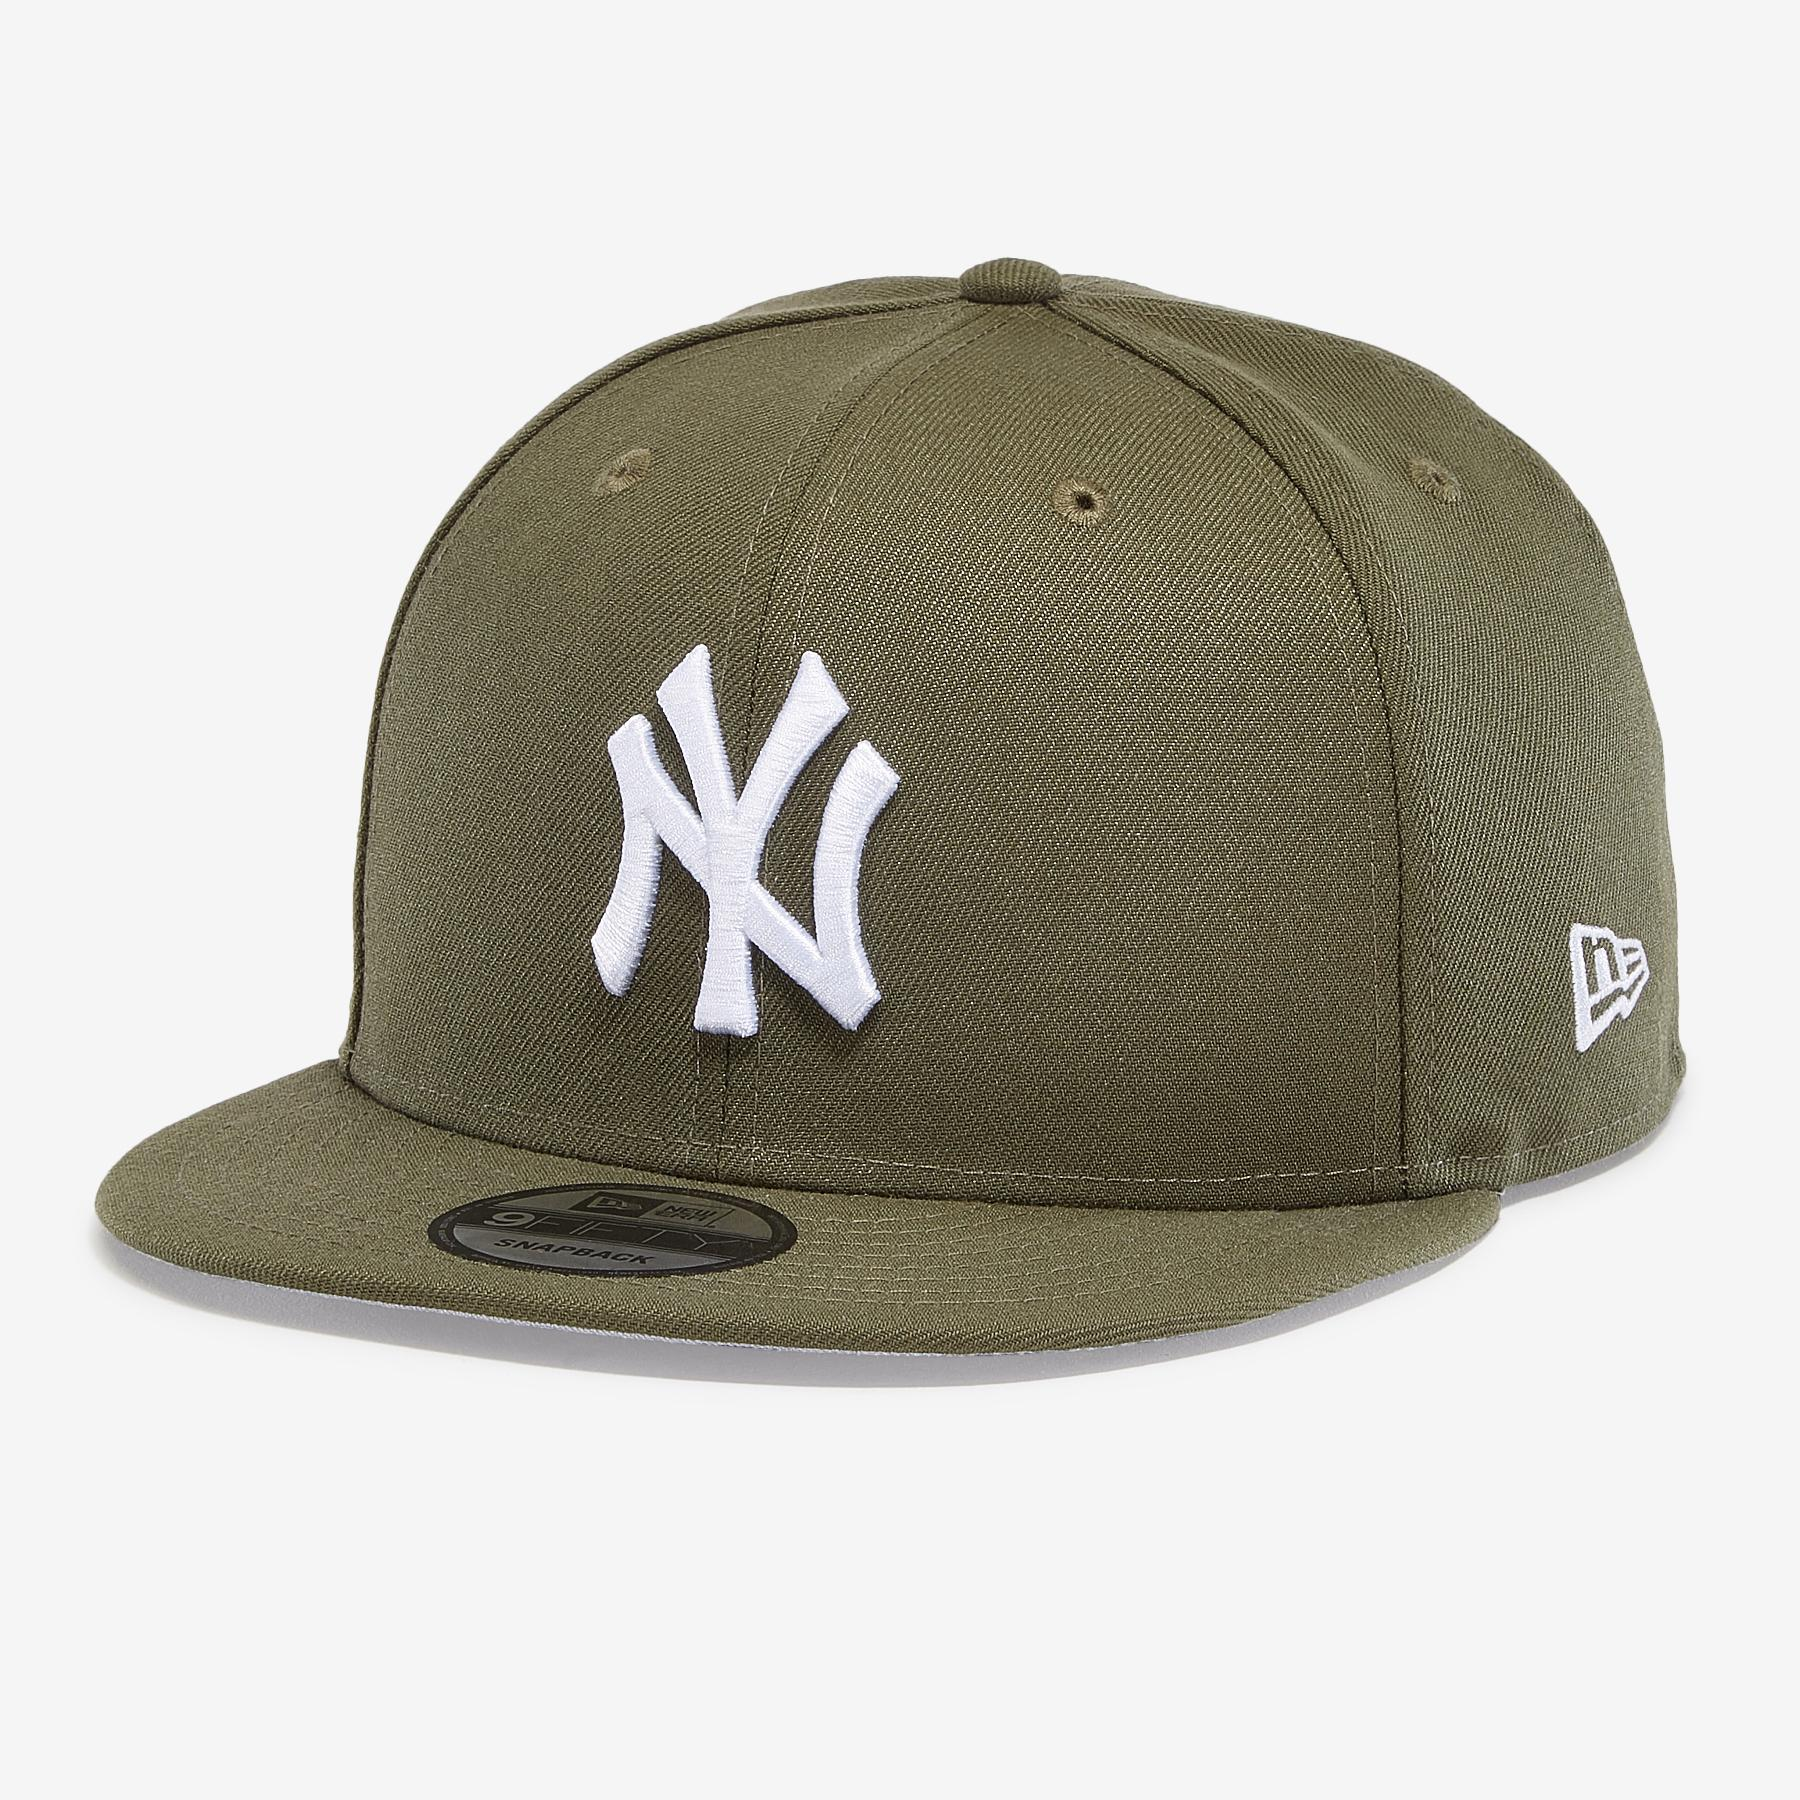 Yankees 9fifty Snapback